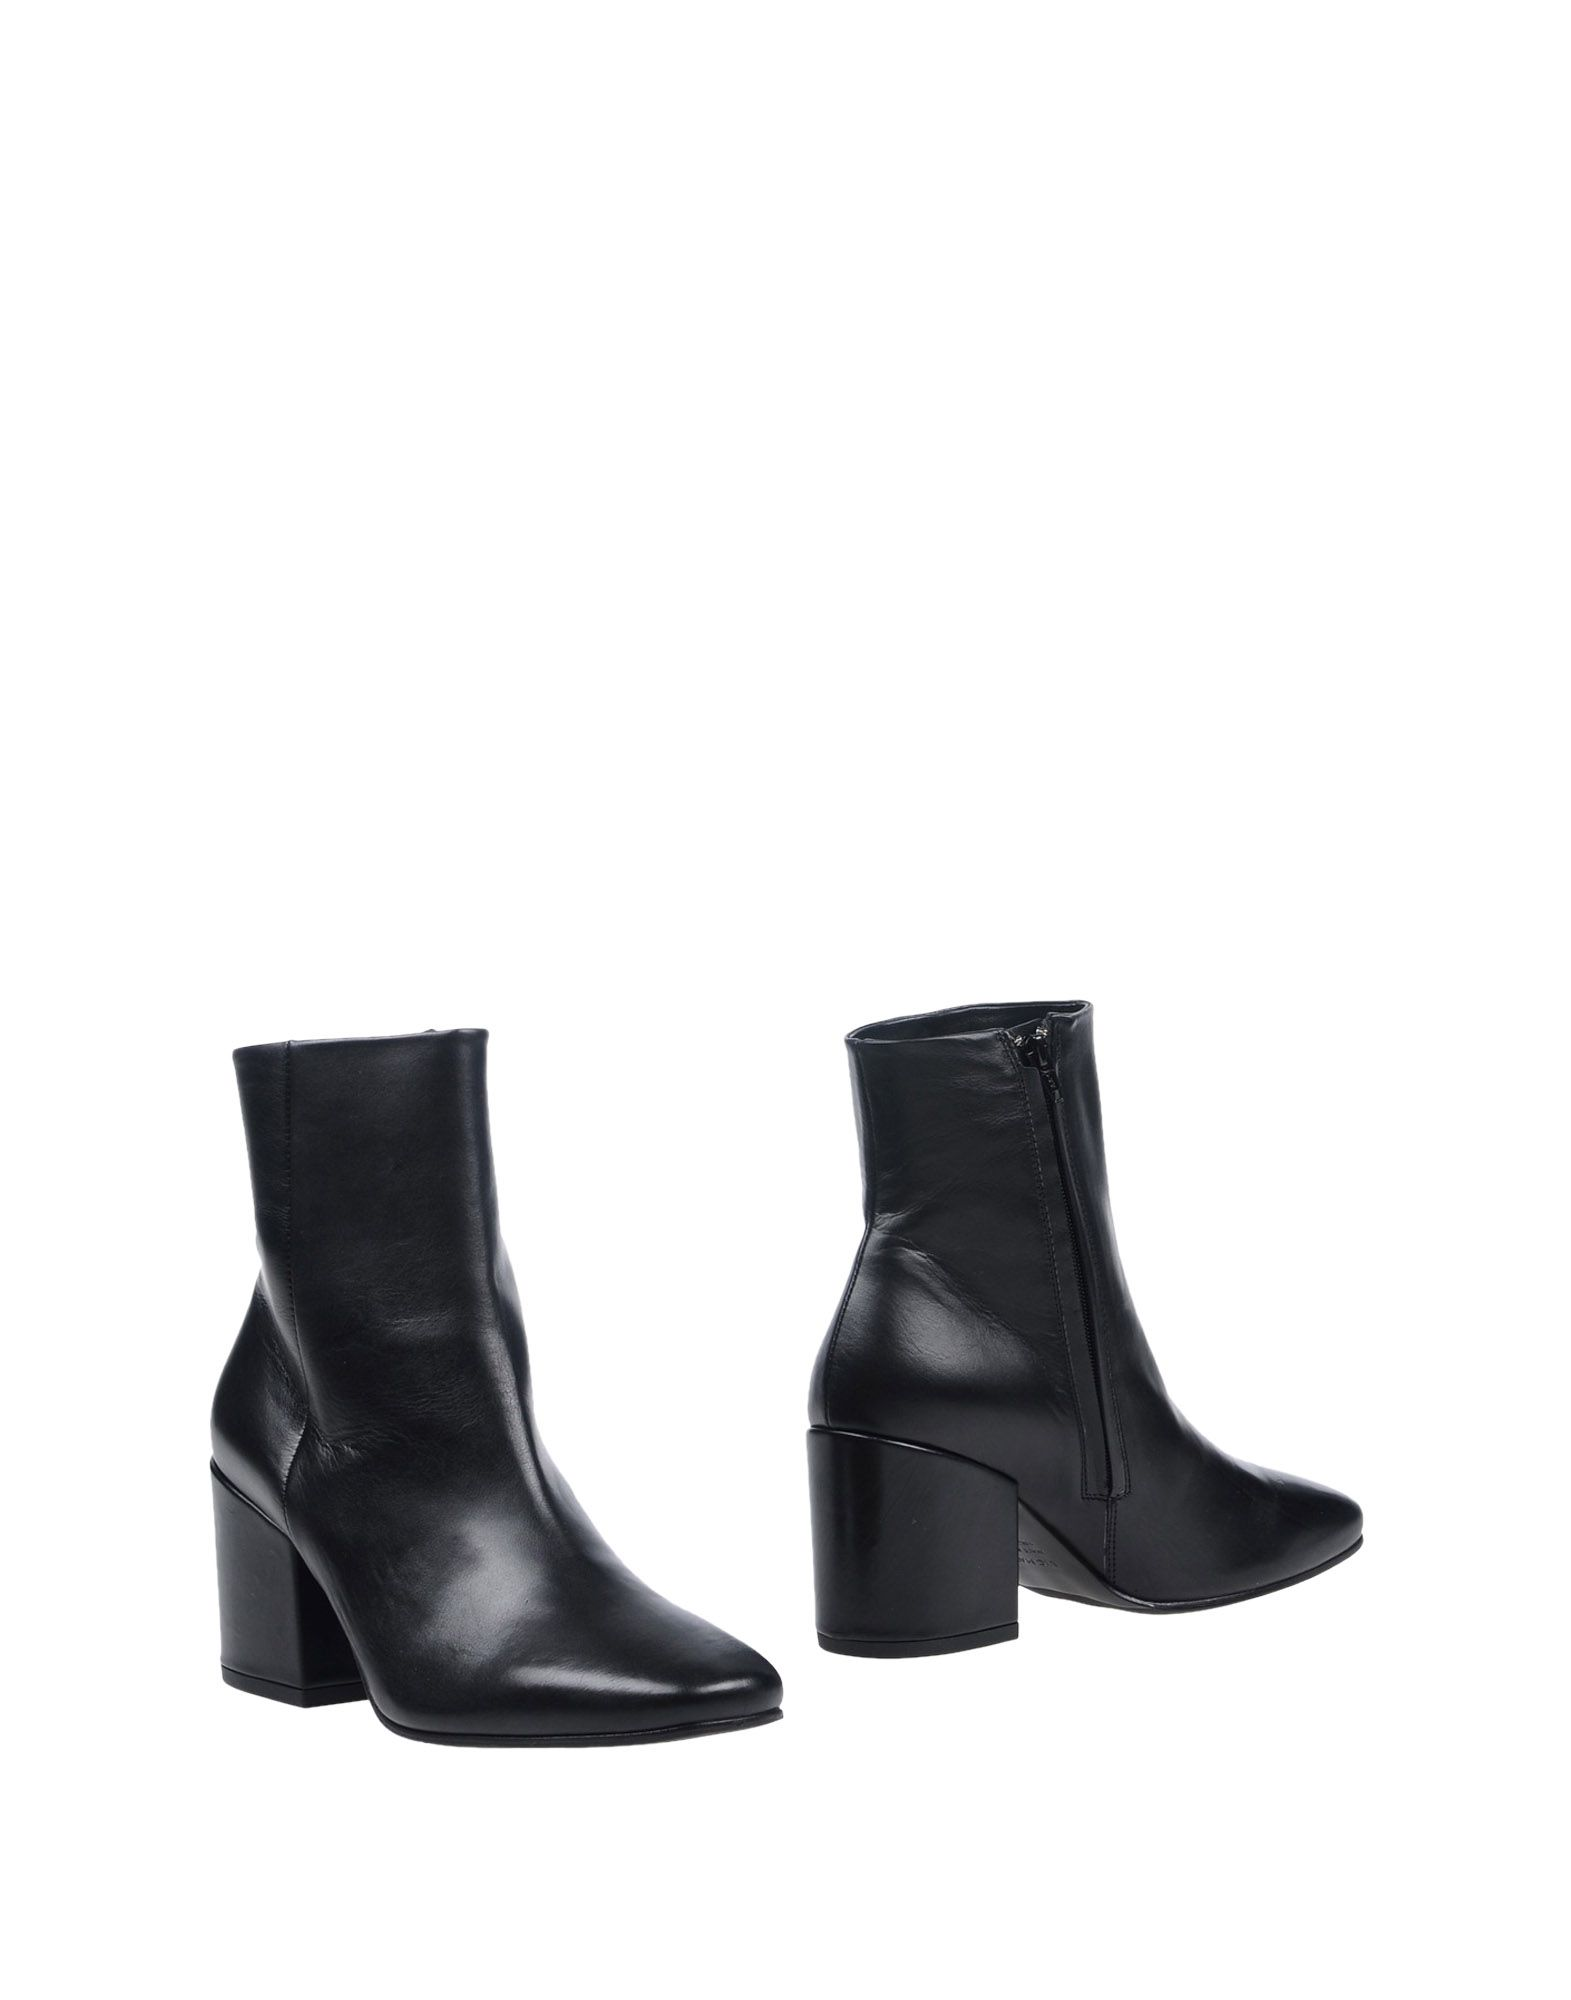 Vic Matiē Ankle Boot - Boots Women Vic Matiē Ankle Boots - online on  Canada - 11459570DF b4a4ce